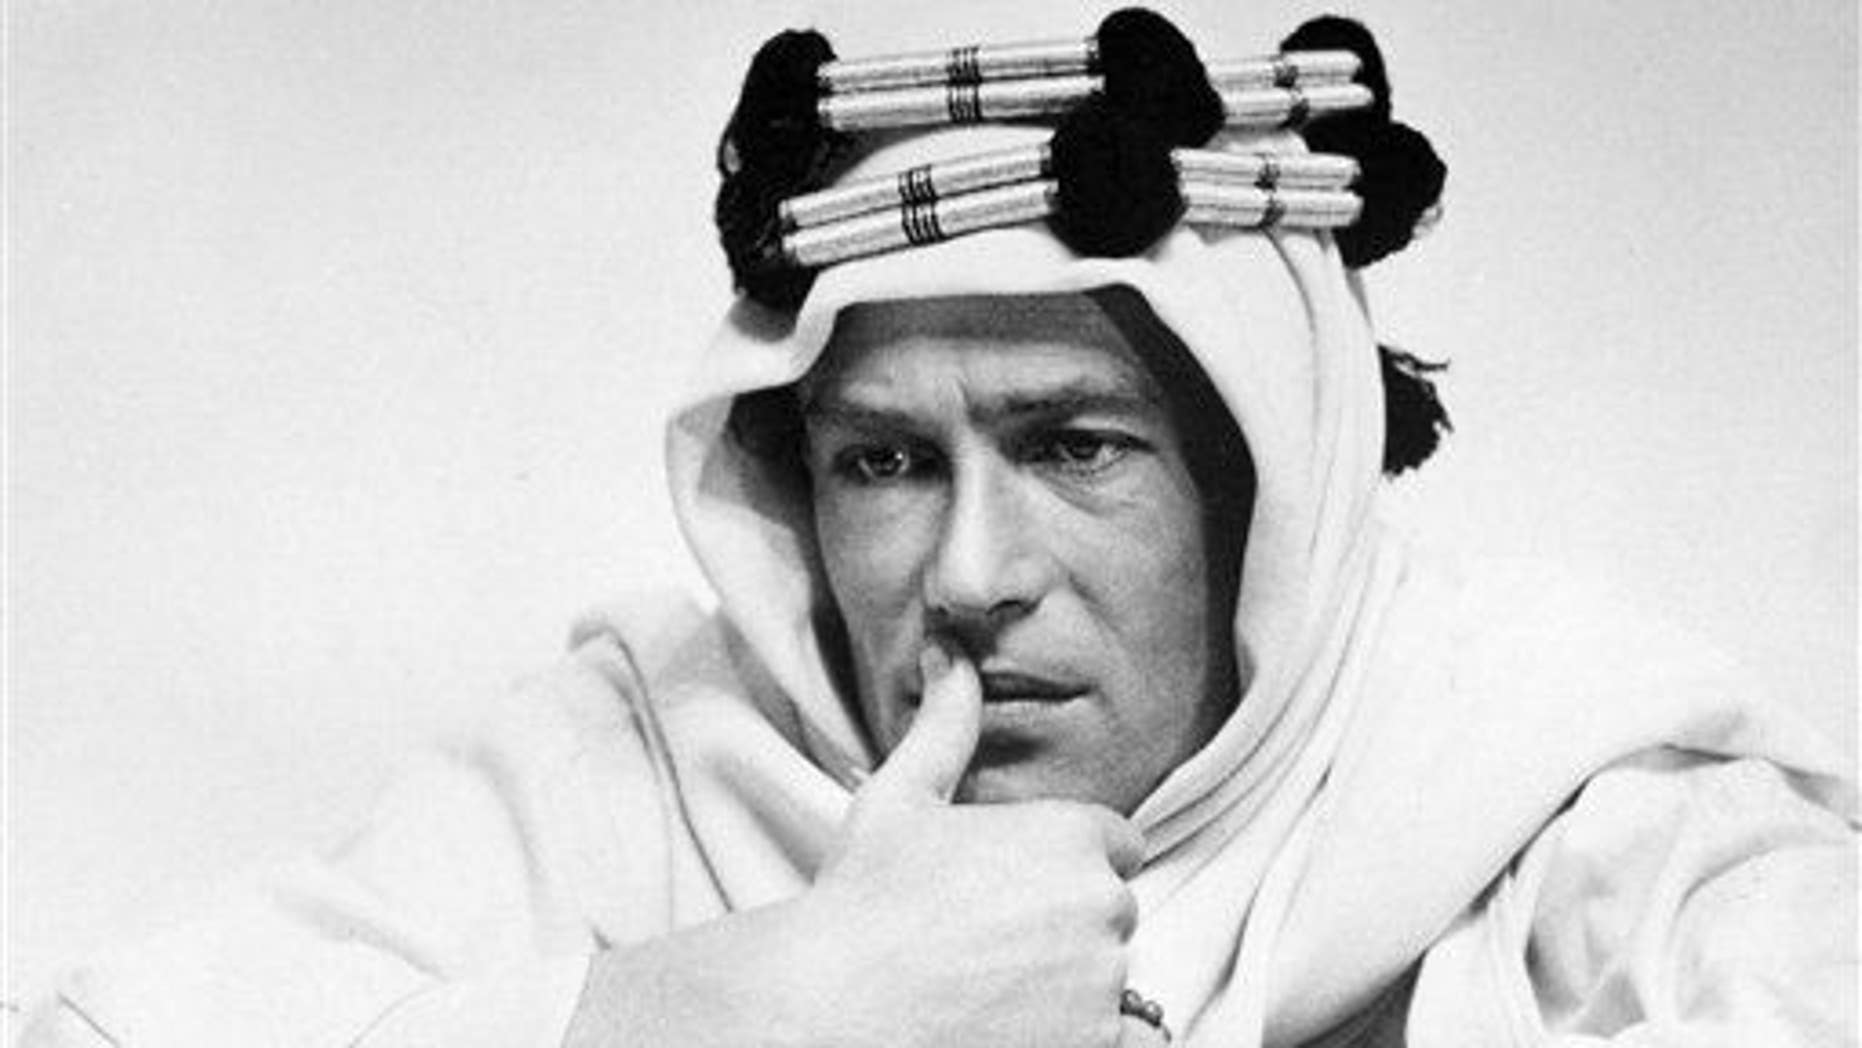 """In this 1961 file photo, actor Peter O'Toole is shown in the title role in the film """"Lawrence of Arabia.���"""